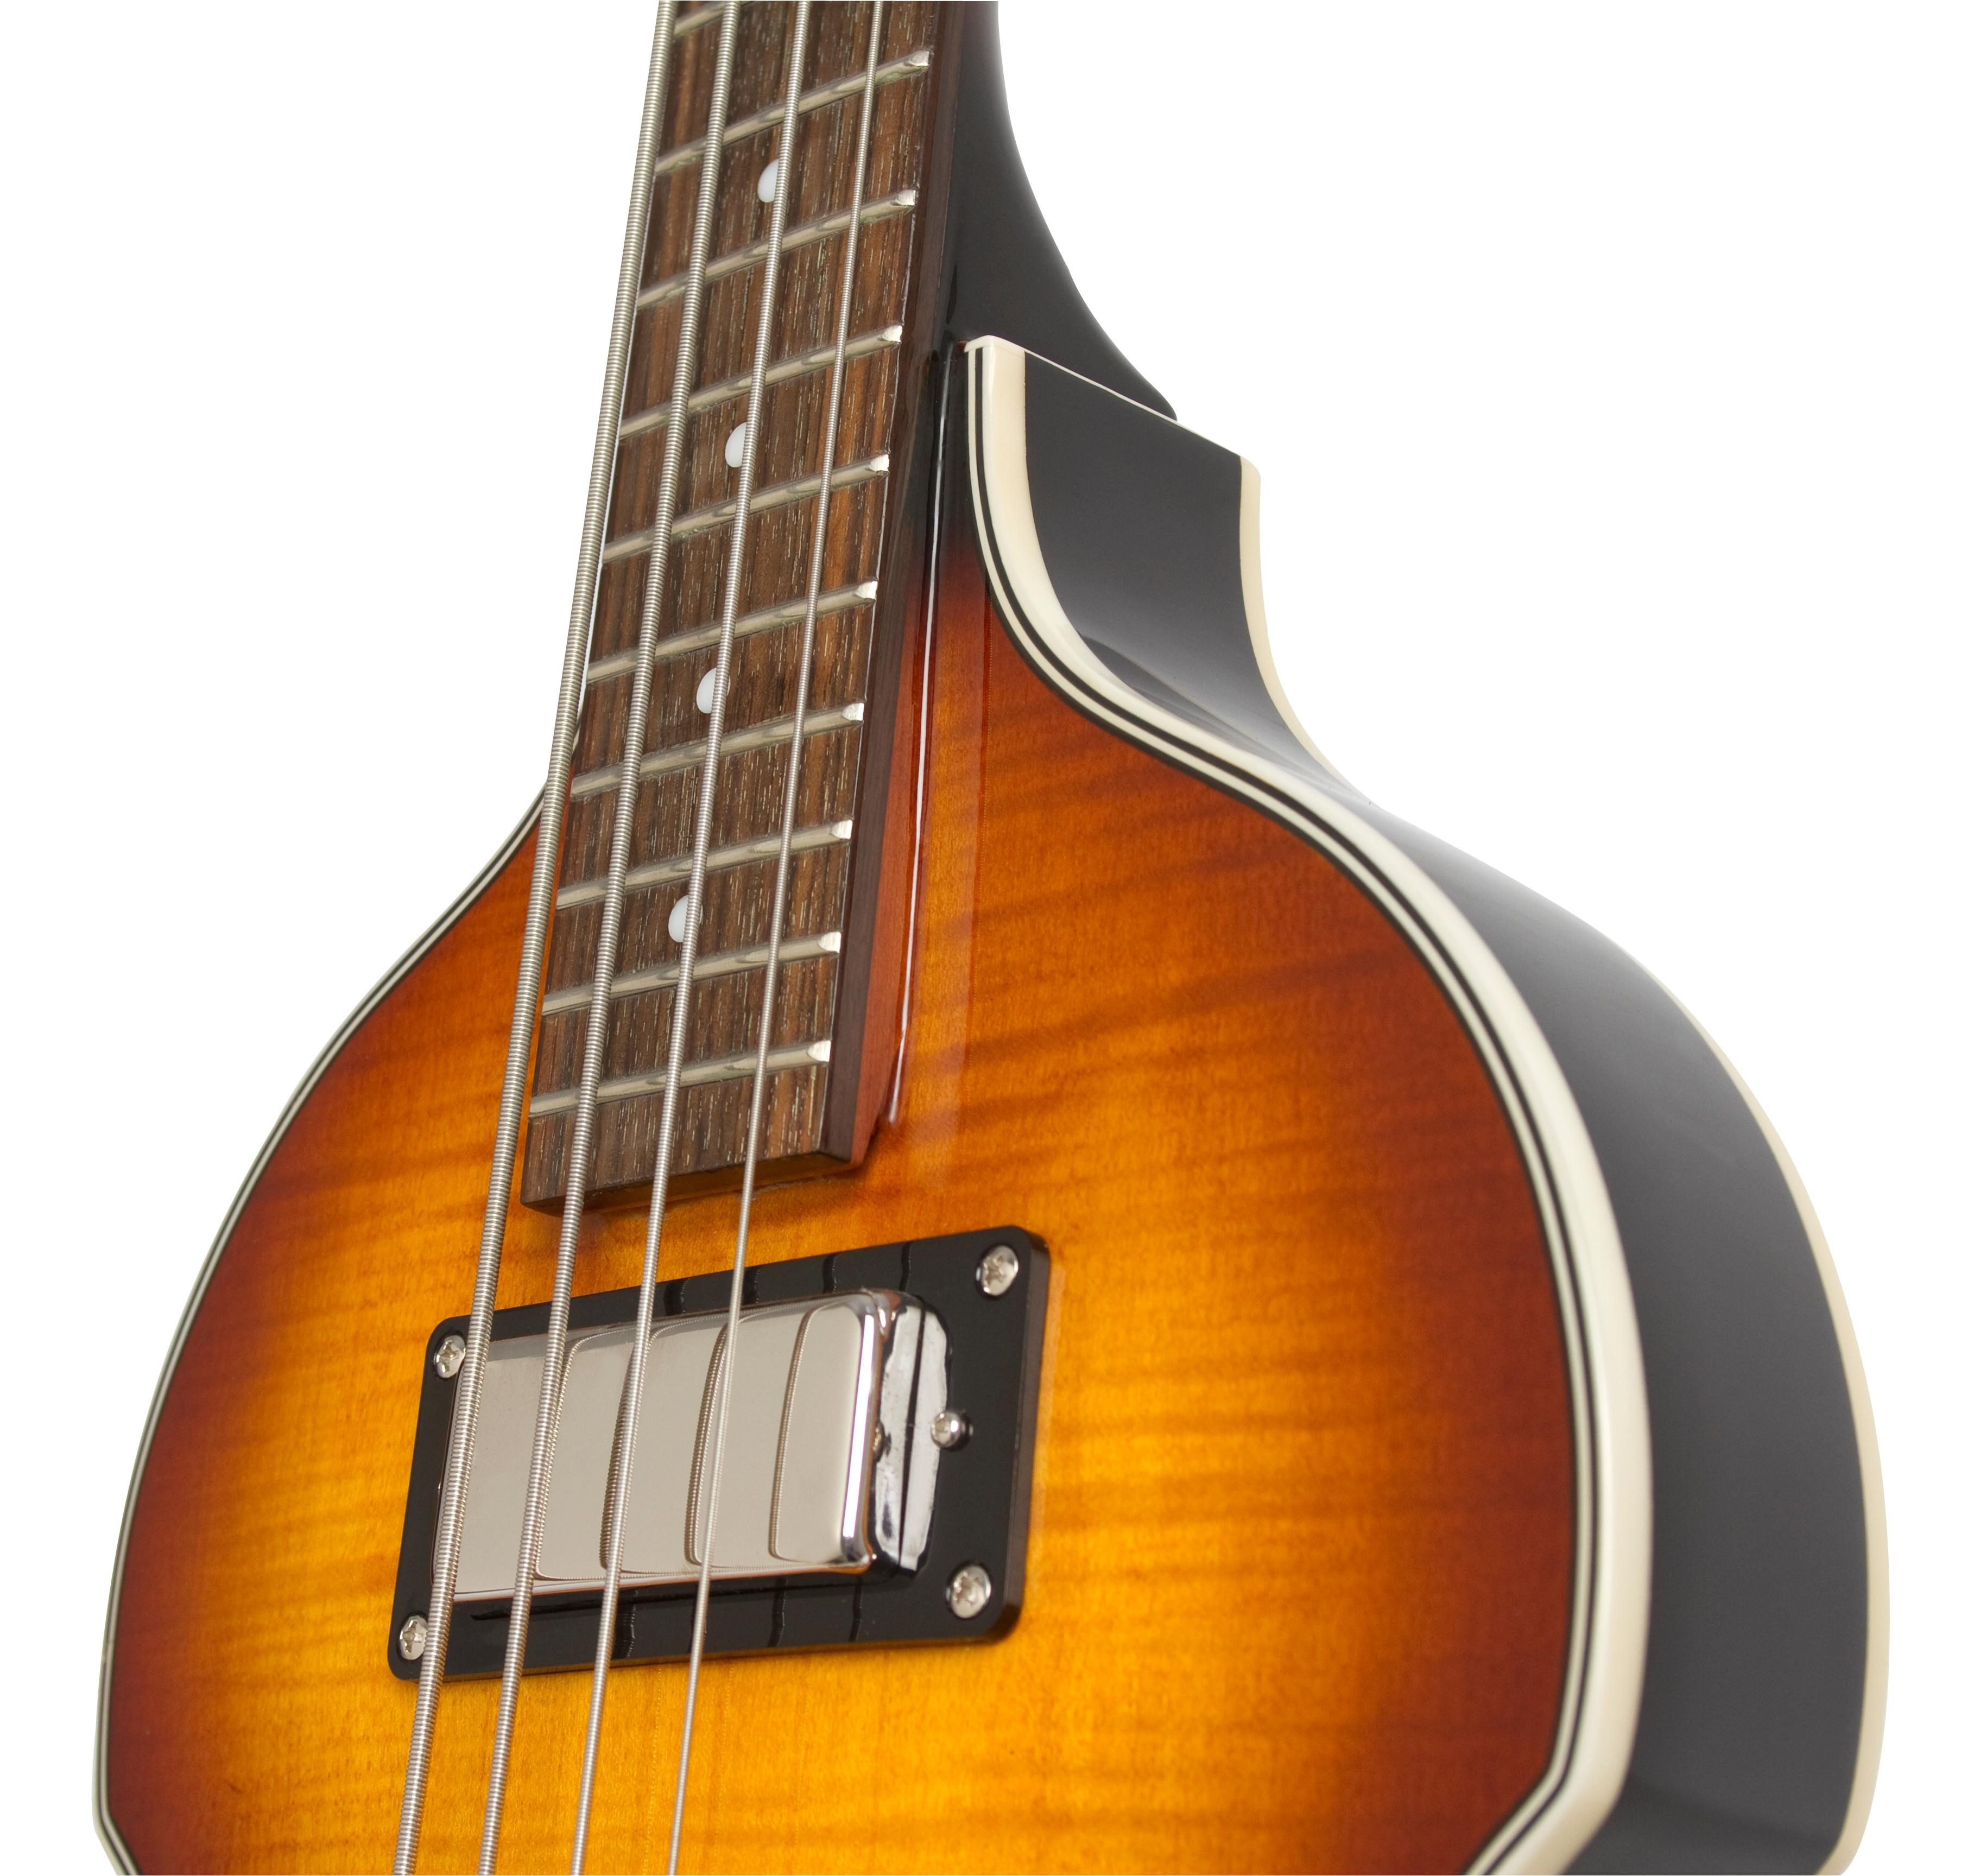 epiphone viola electric bass guitar vintage sunburst musical instruments. Black Bedroom Furniture Sets. Home Design Ideas